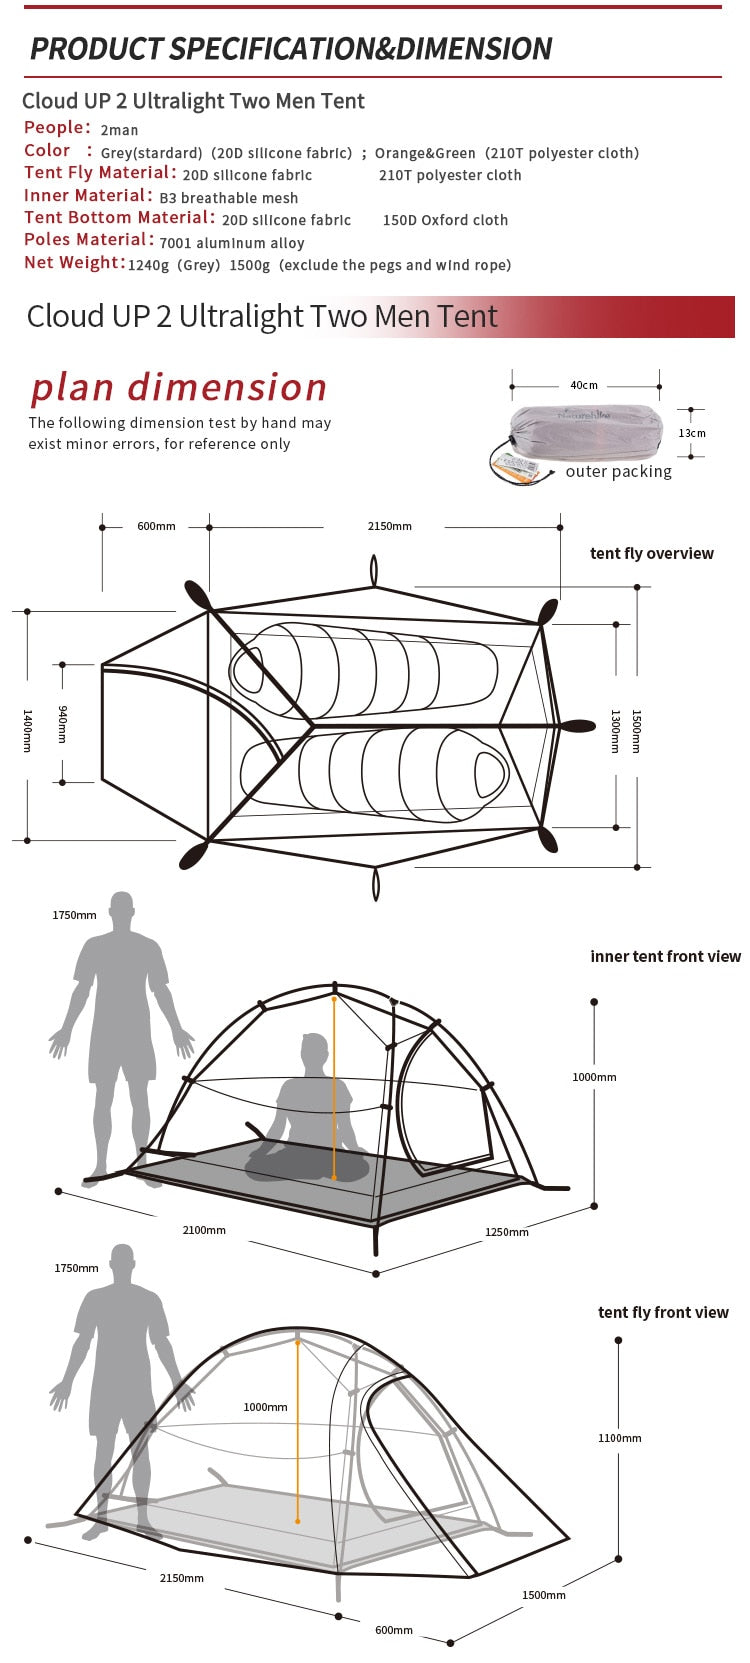 Diagram showing tent dimensions for 2 man option